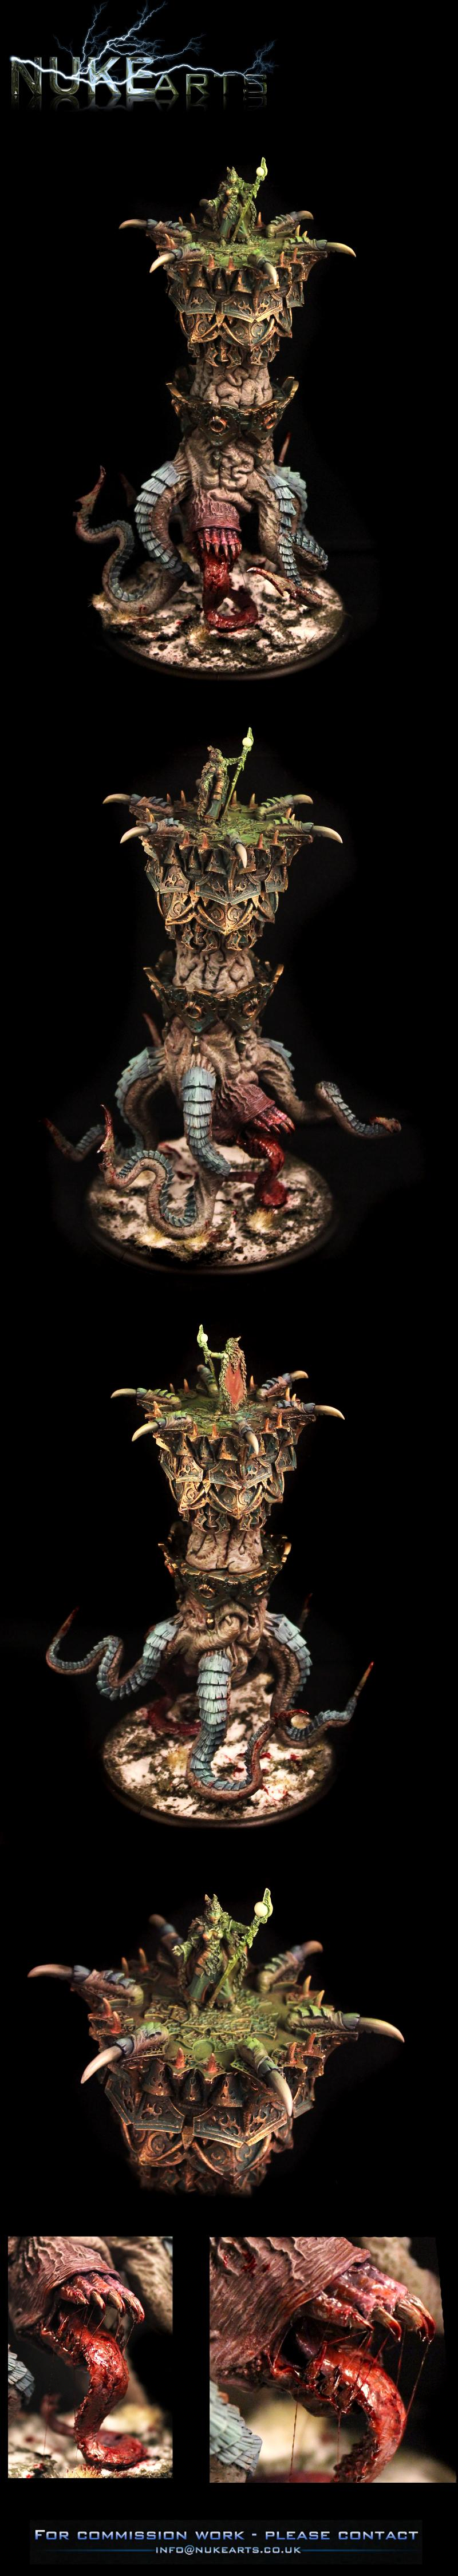 Hordes, Nuclealosaur, Nuke Arts, Painting, Privateer Press, Throne Of Everblight, Warmachine